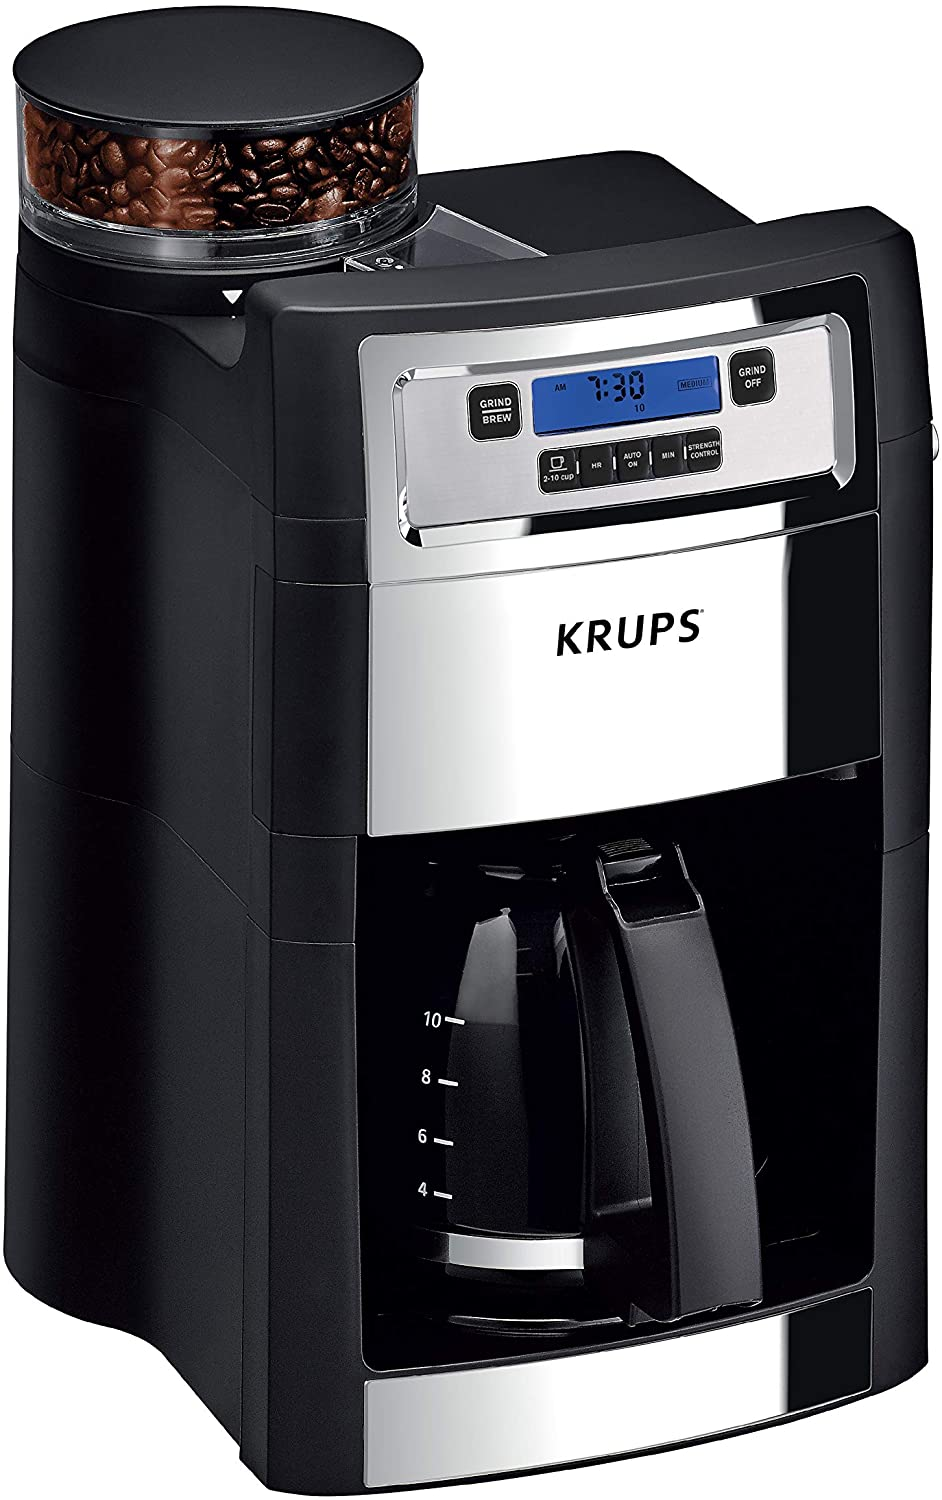 KRUPS Grind and Brew Coffee Maker